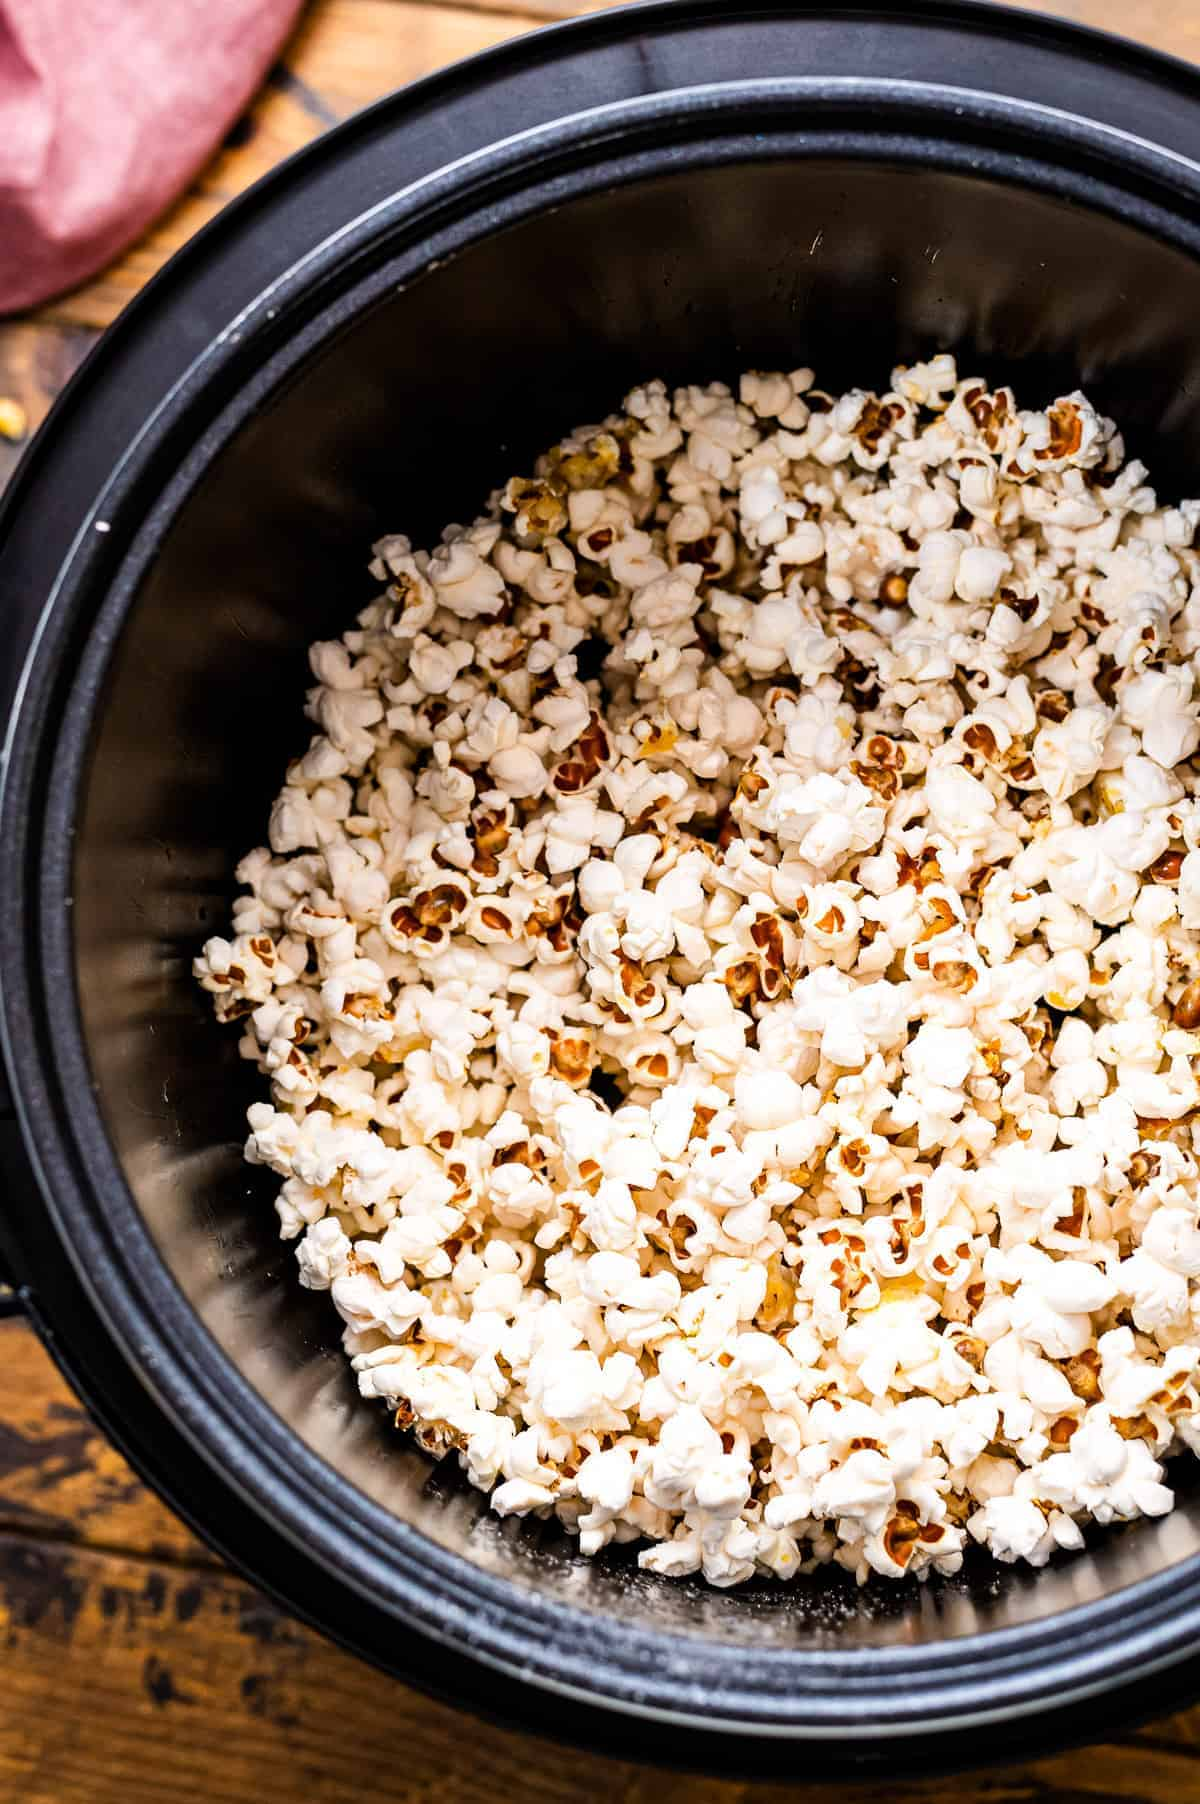 Popped popcorn in an Instant Pot